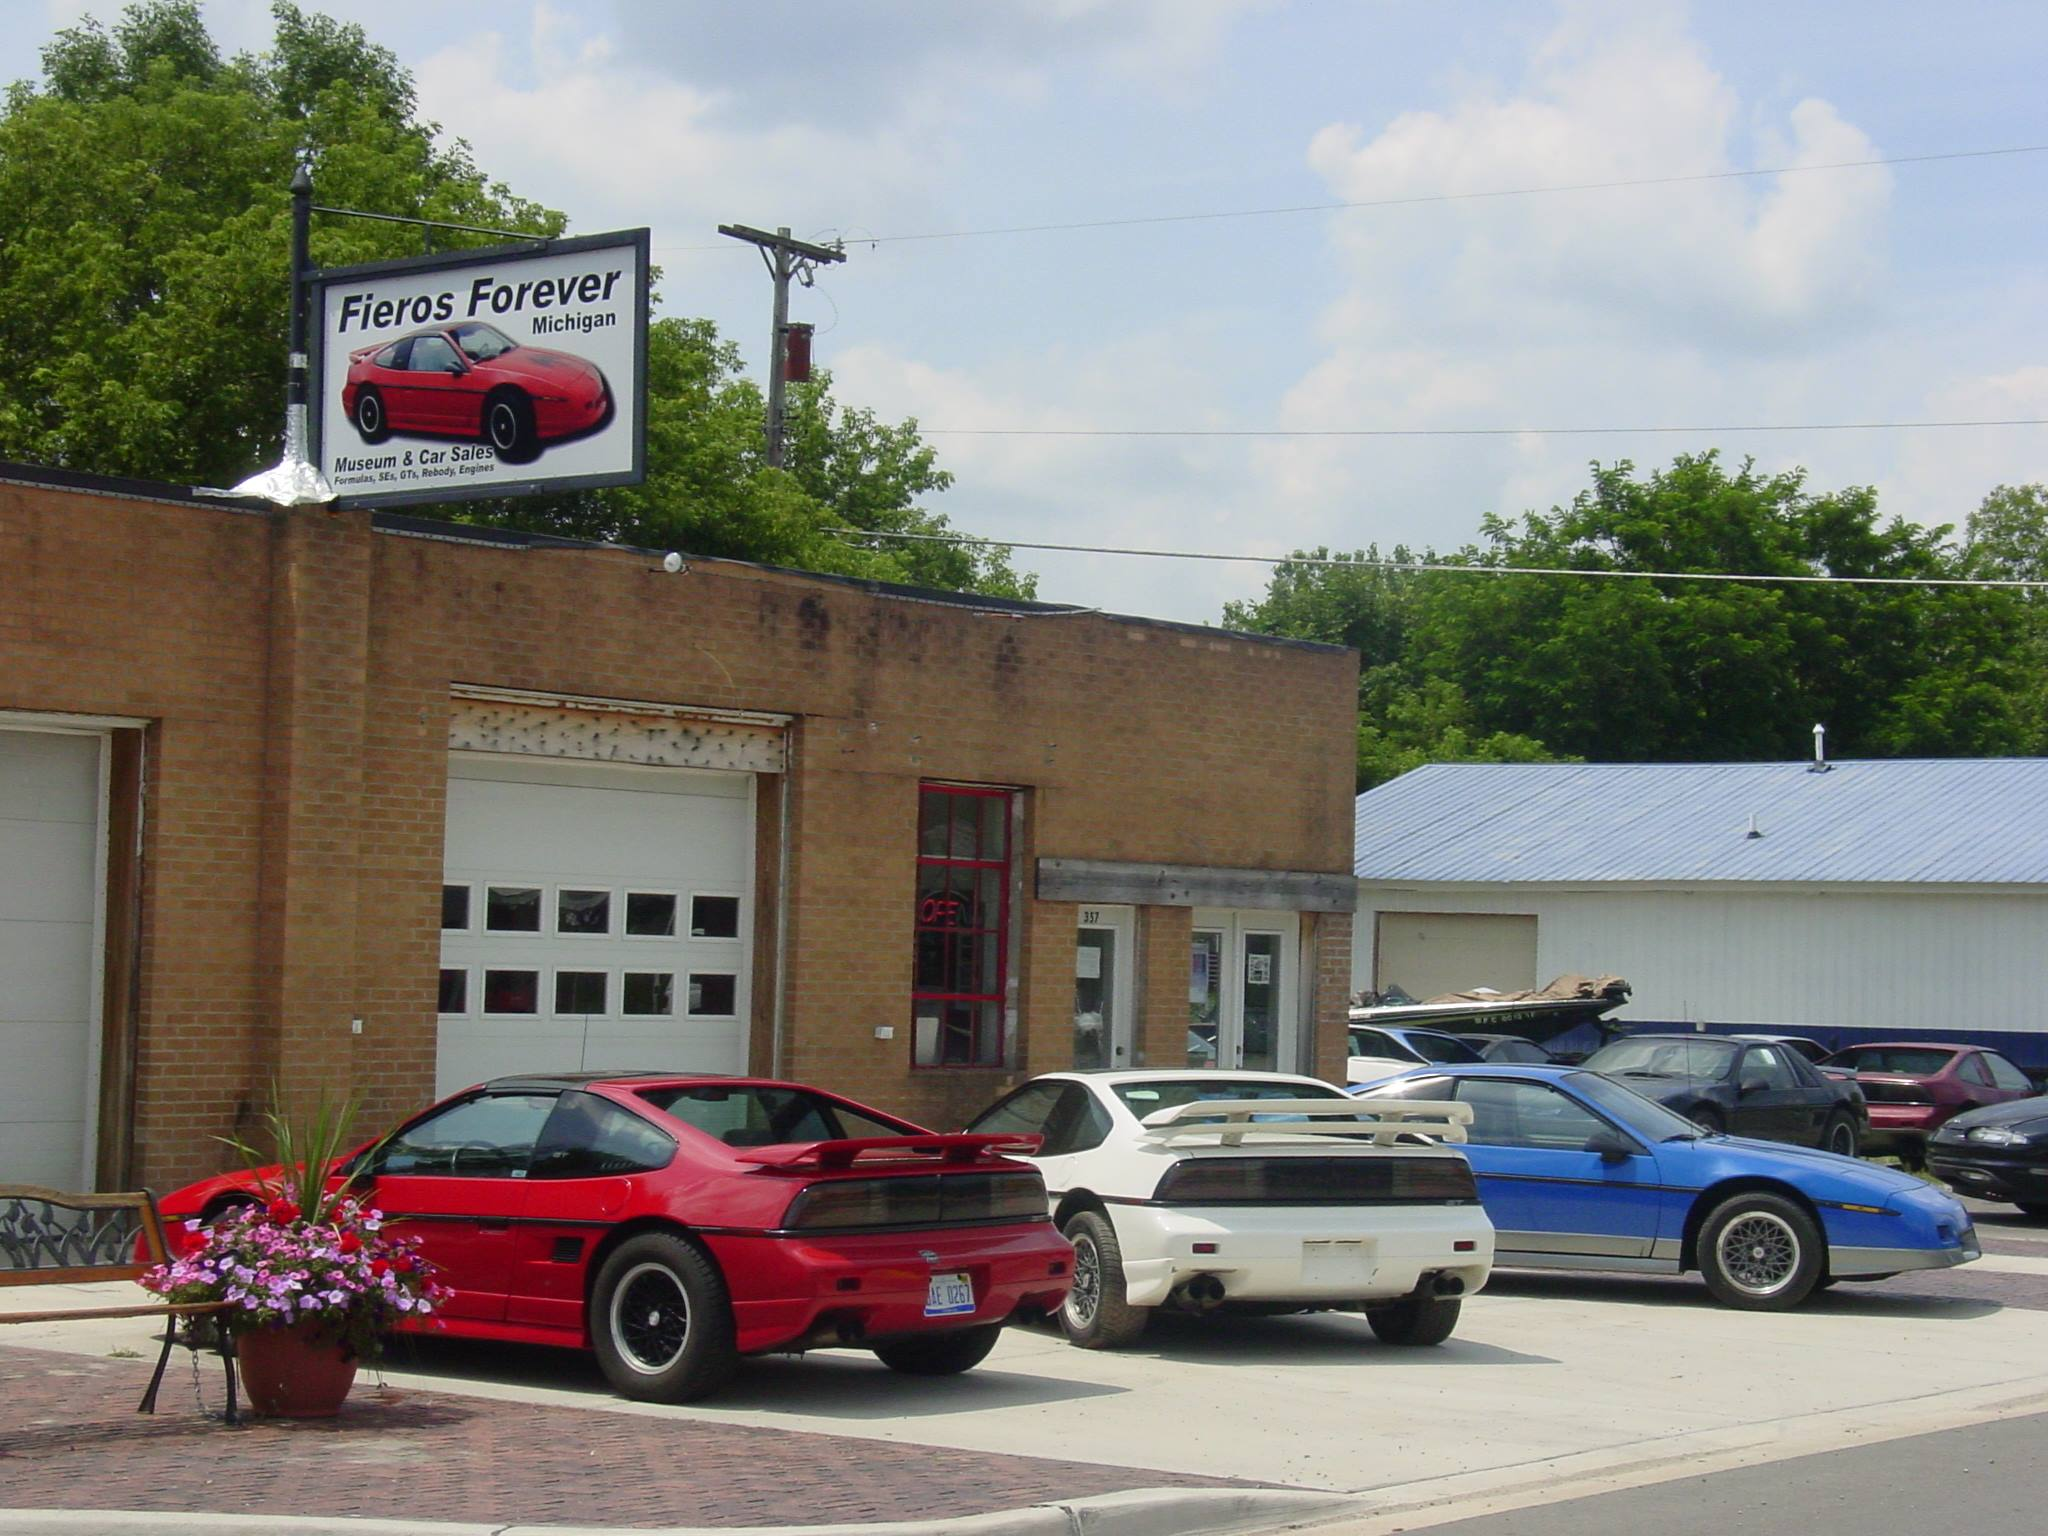 Fieros Forever Shop And Museum Sanford Michigan